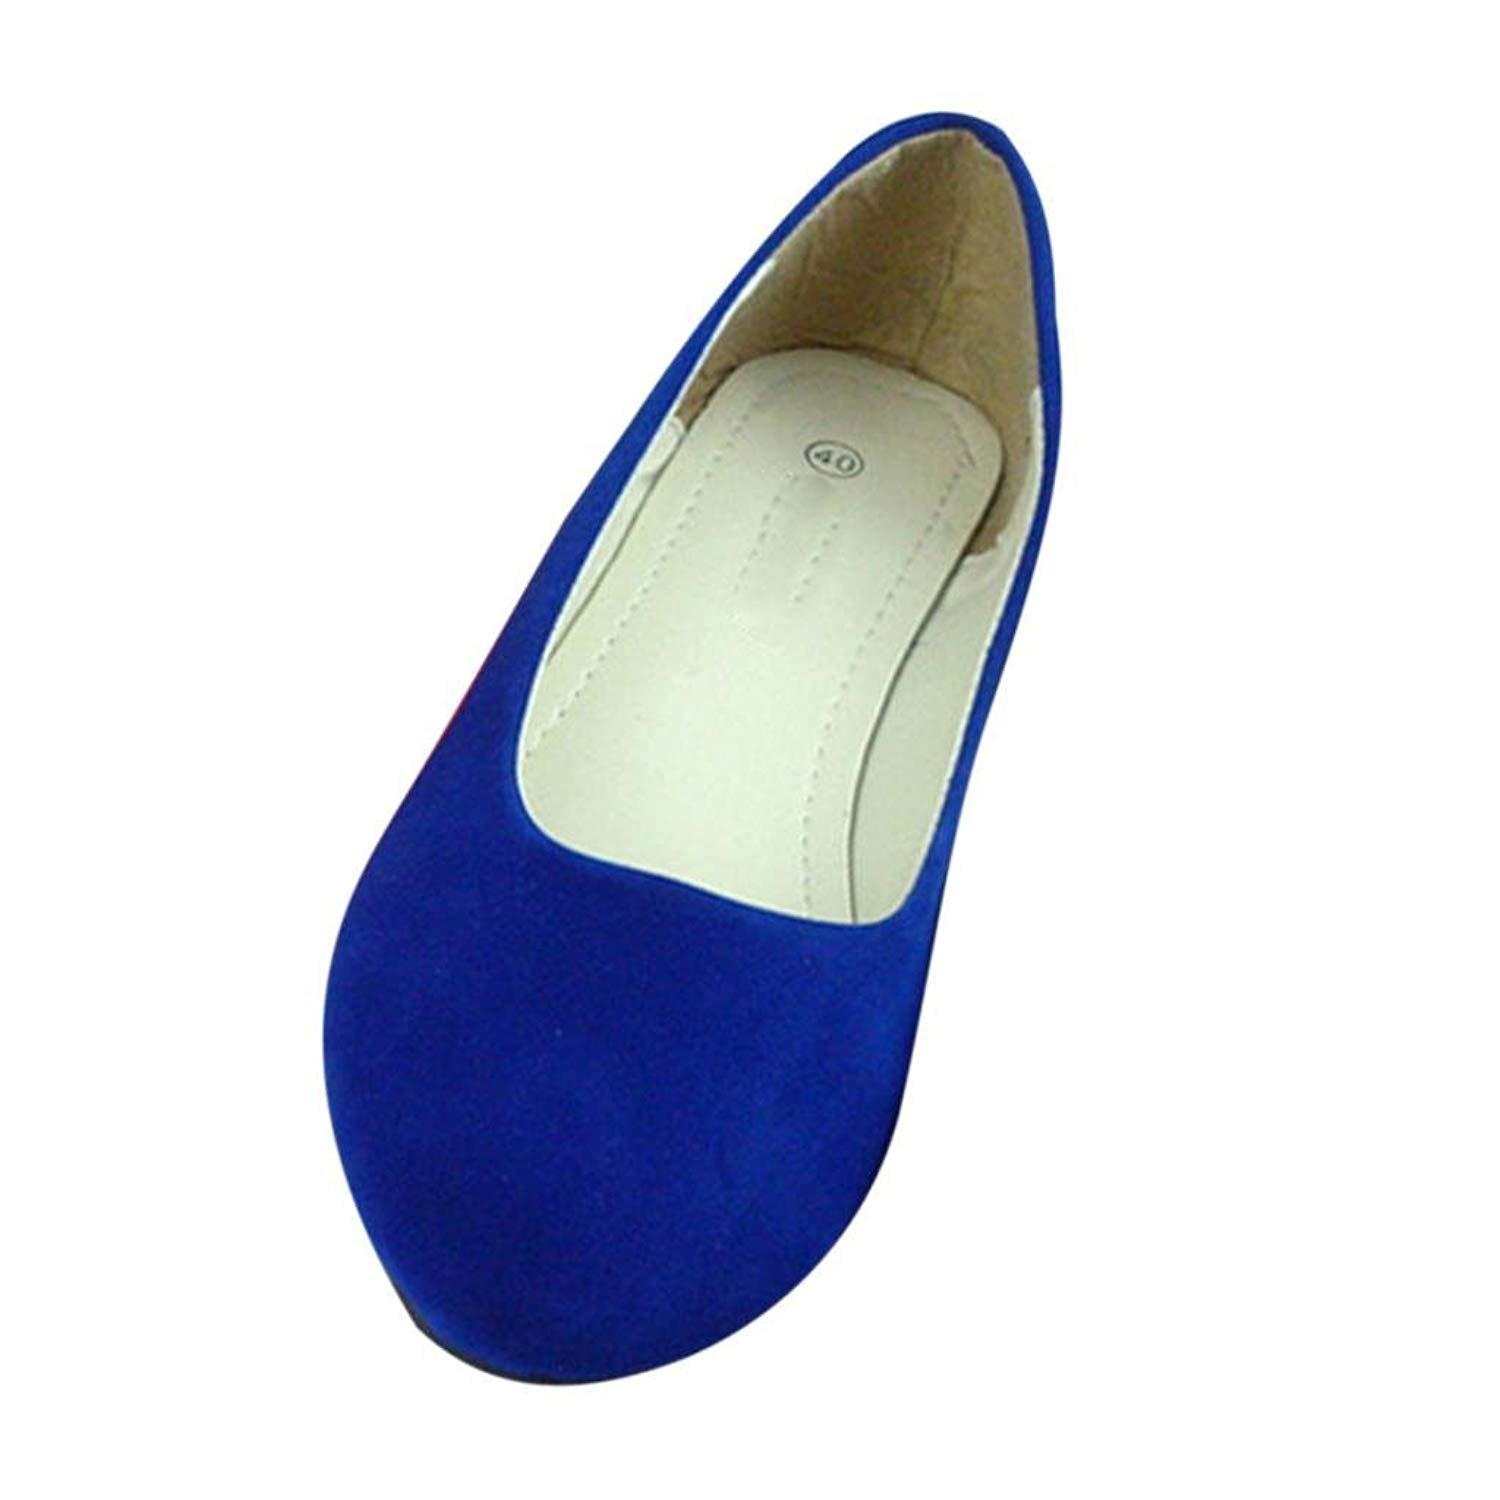 Maybest Women Suede Point Head Casual Flat Pumps Ladies Work Girls School Dolly Shoes